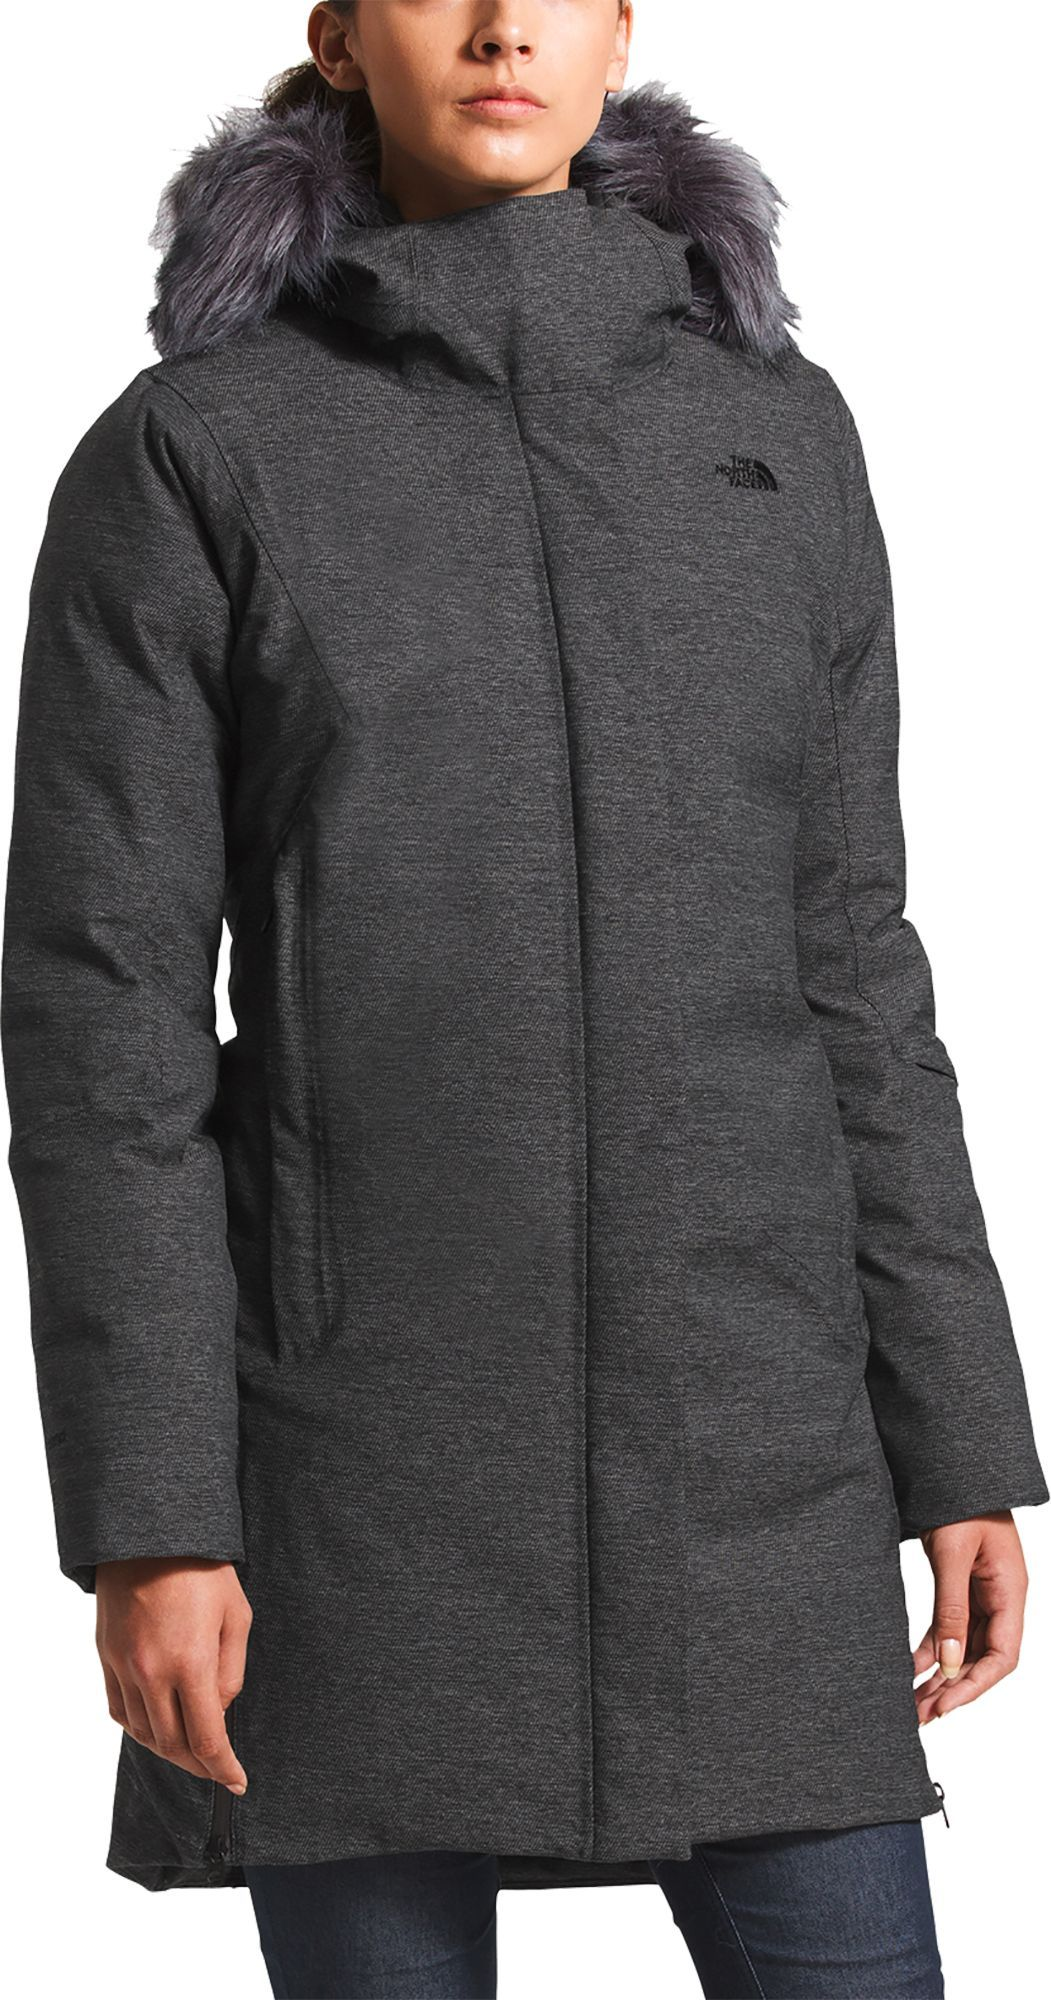 The North Face Women's Defdown Parka GTX | North face women